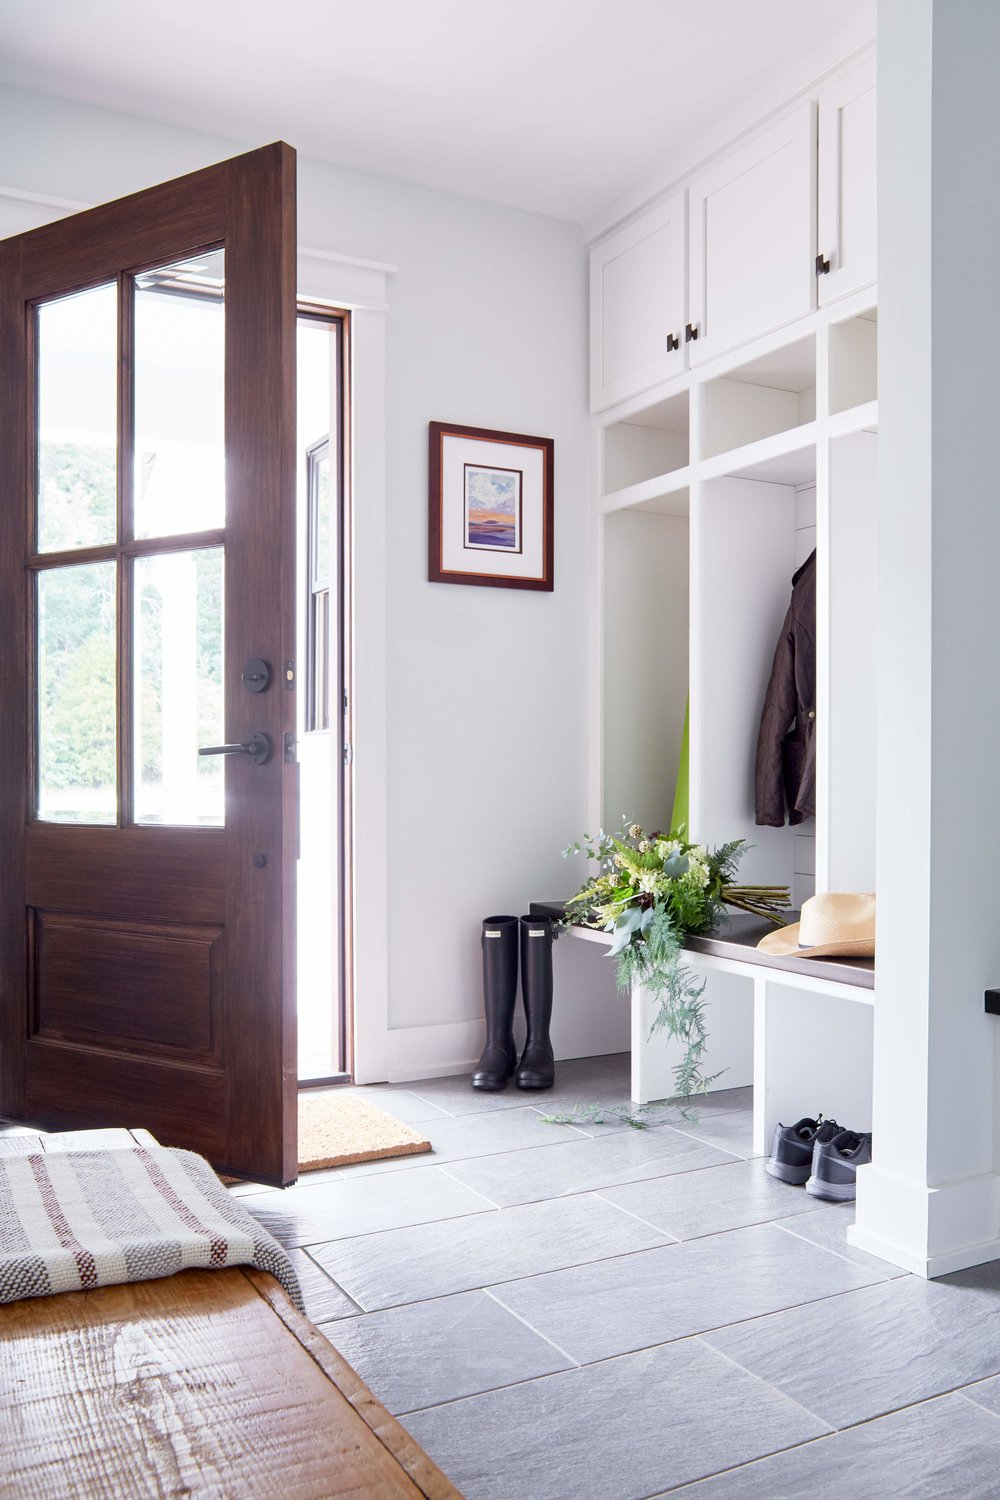 Secondary entry and mudroom with custom cubbies and warm wood accents.